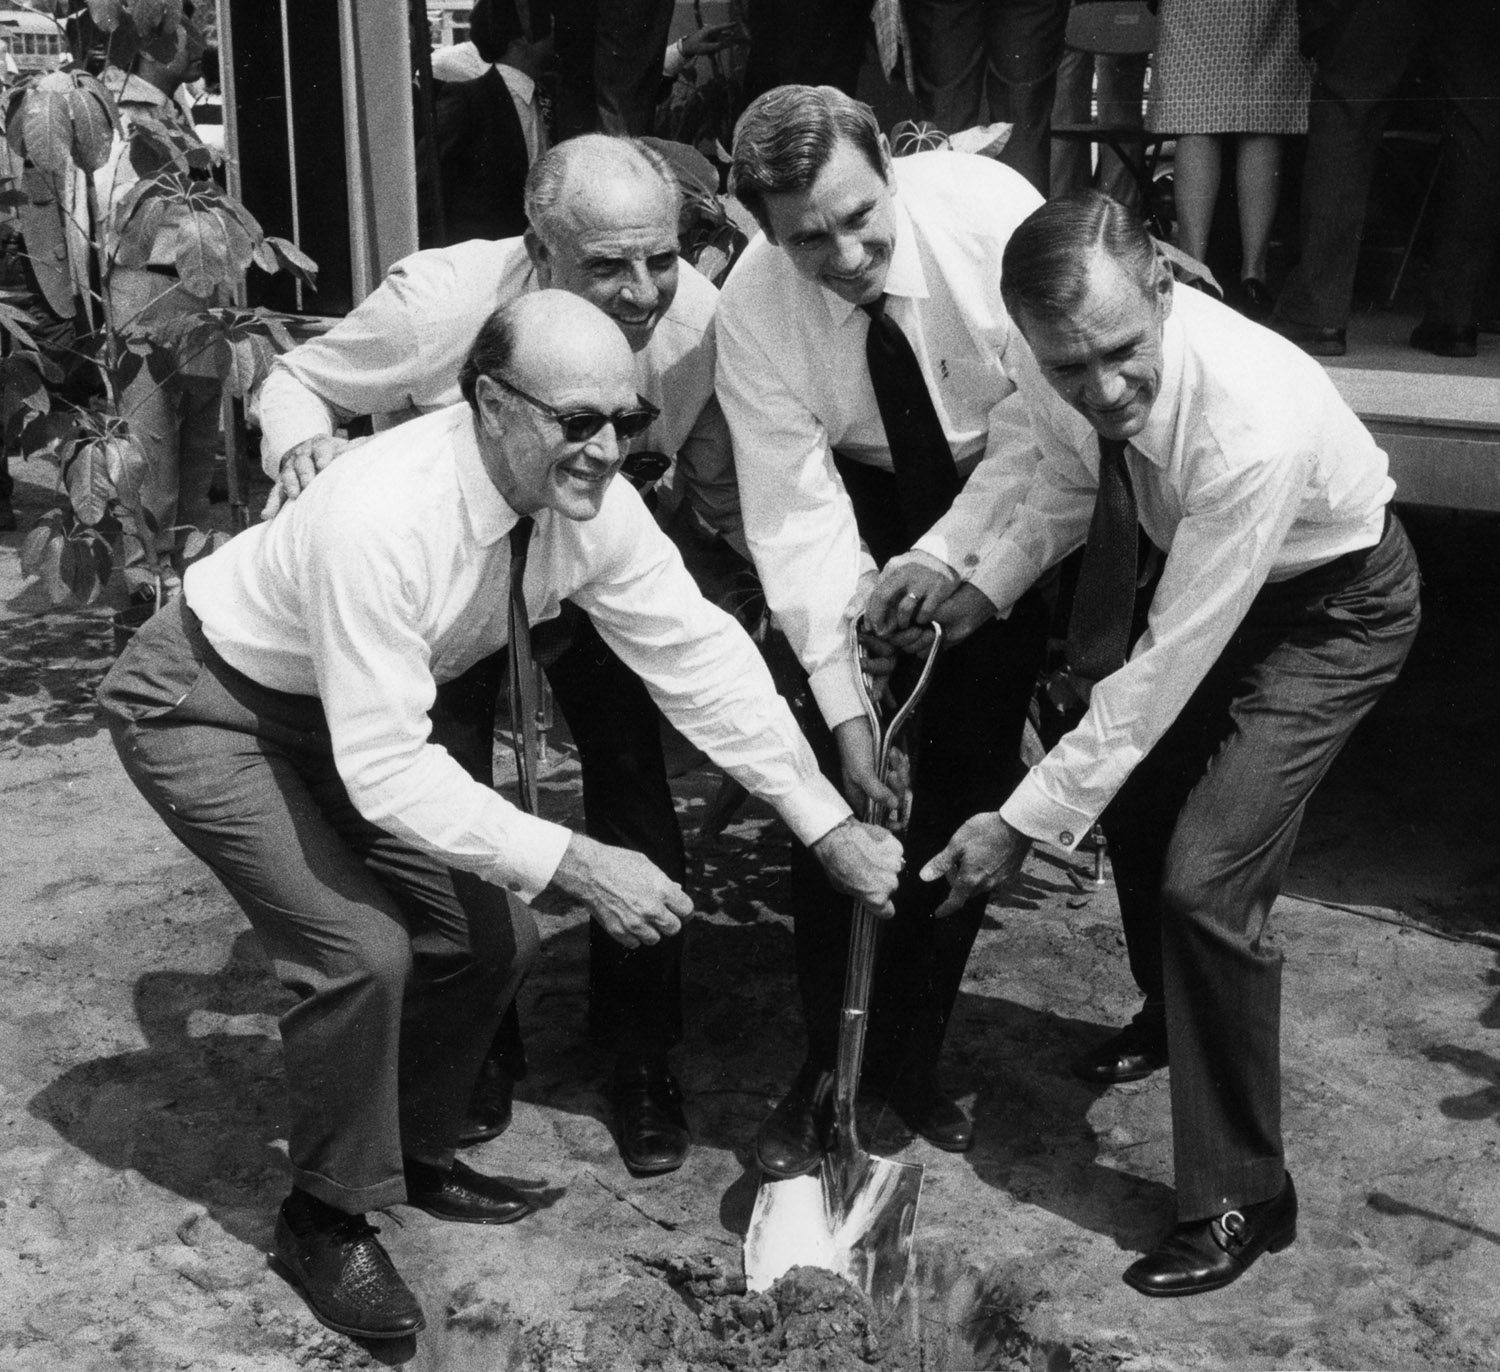 UNF Groundbreaking Ceremony, September 18, 1971. l-r: Chancellor Robert Mautz, Commissioner Floyd Christian, Governor Reubin Askew, UNF President Thomas G. Carpenter